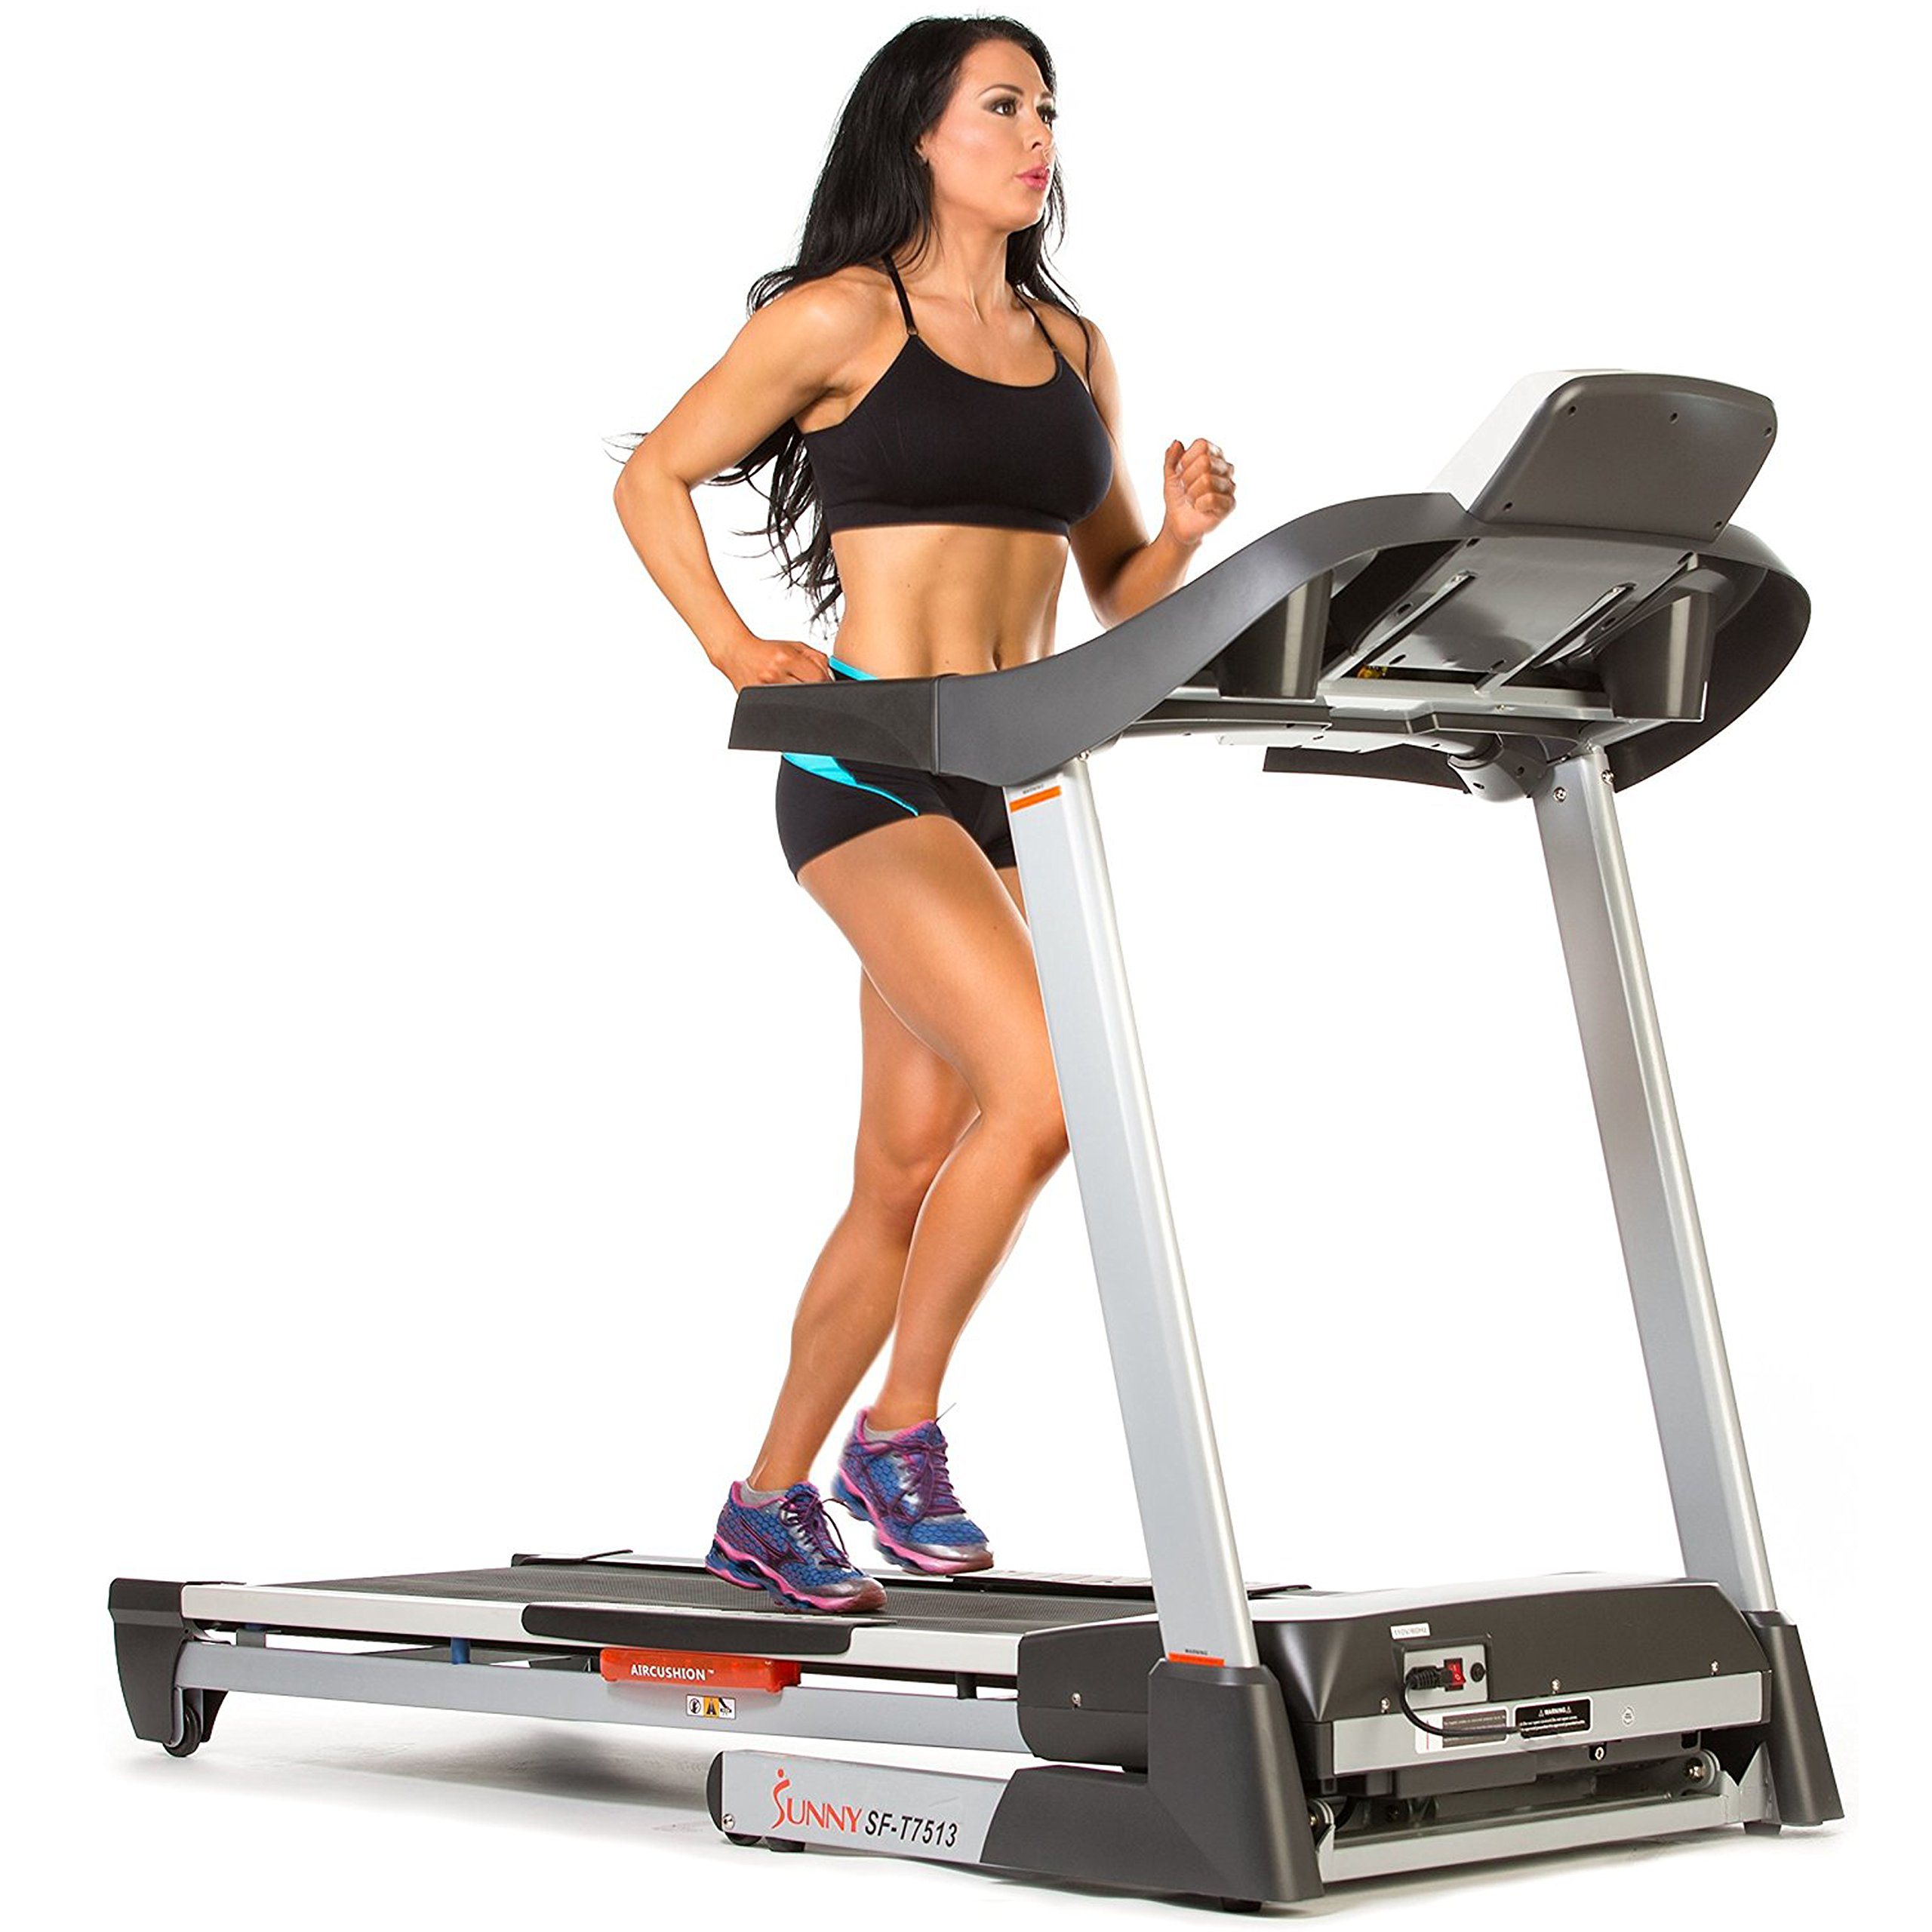 Treadmill w/ Sound System, Portable, Folds and Large Console Display by Sunny Health & Fitness - SF-T7513 by Sunny Health & Fitness